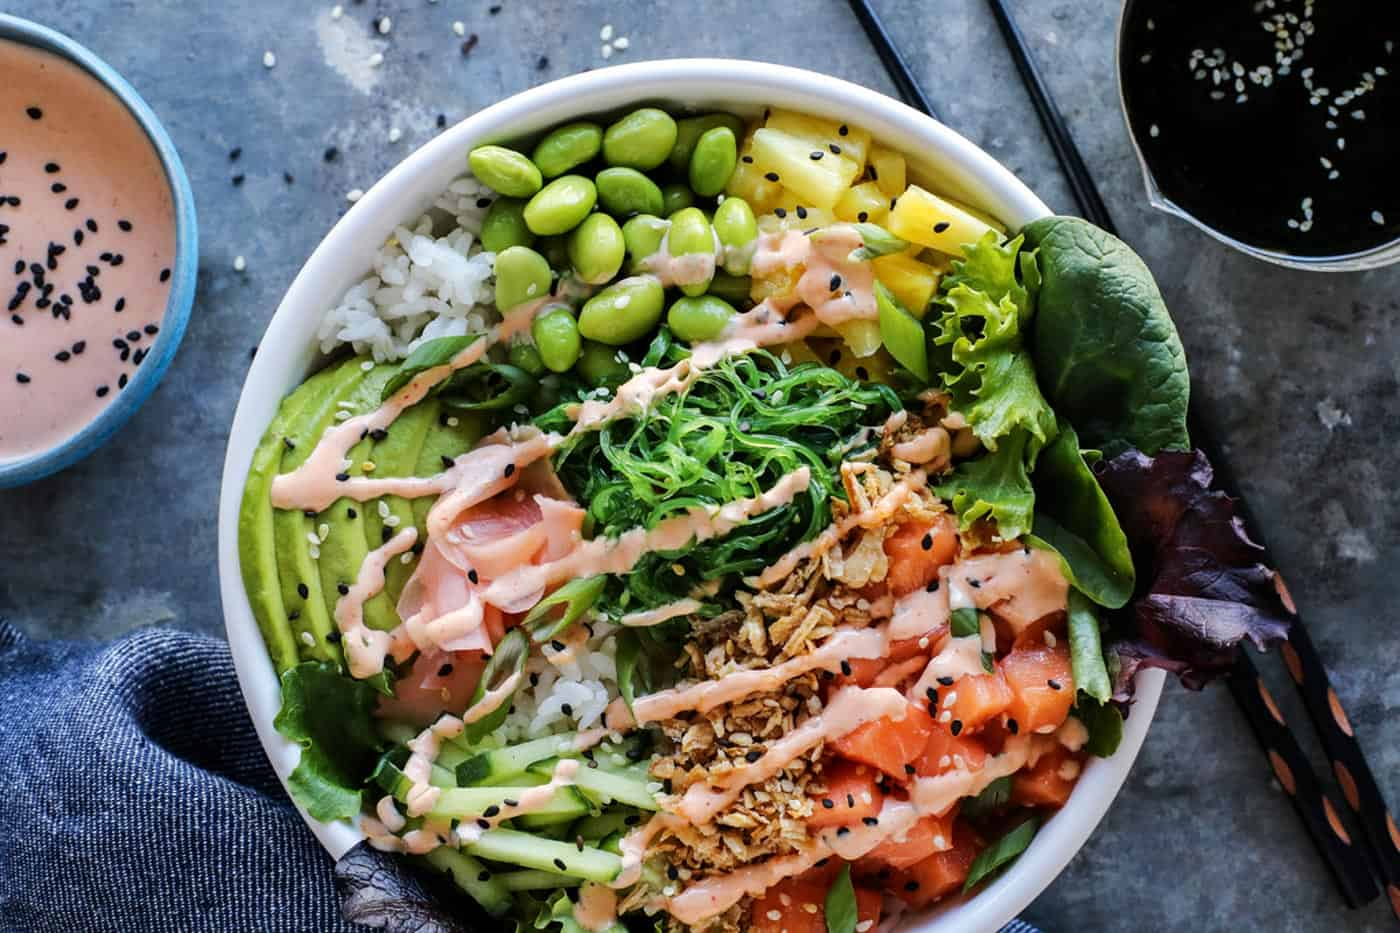 Hawaiian Poke Bowl Recipe With Spicy Aioli Make The Best Poke